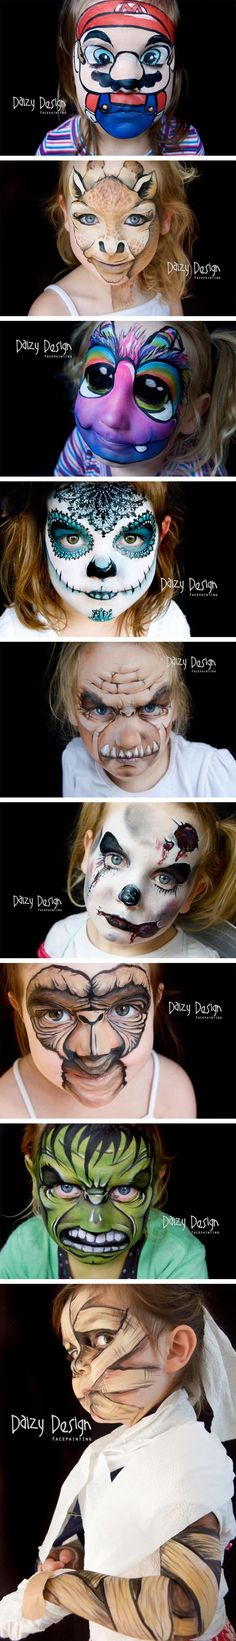 Awesome Face Paintings | The Bored Ninja - Fun, Interesting, and Cool Stuff on the Internet